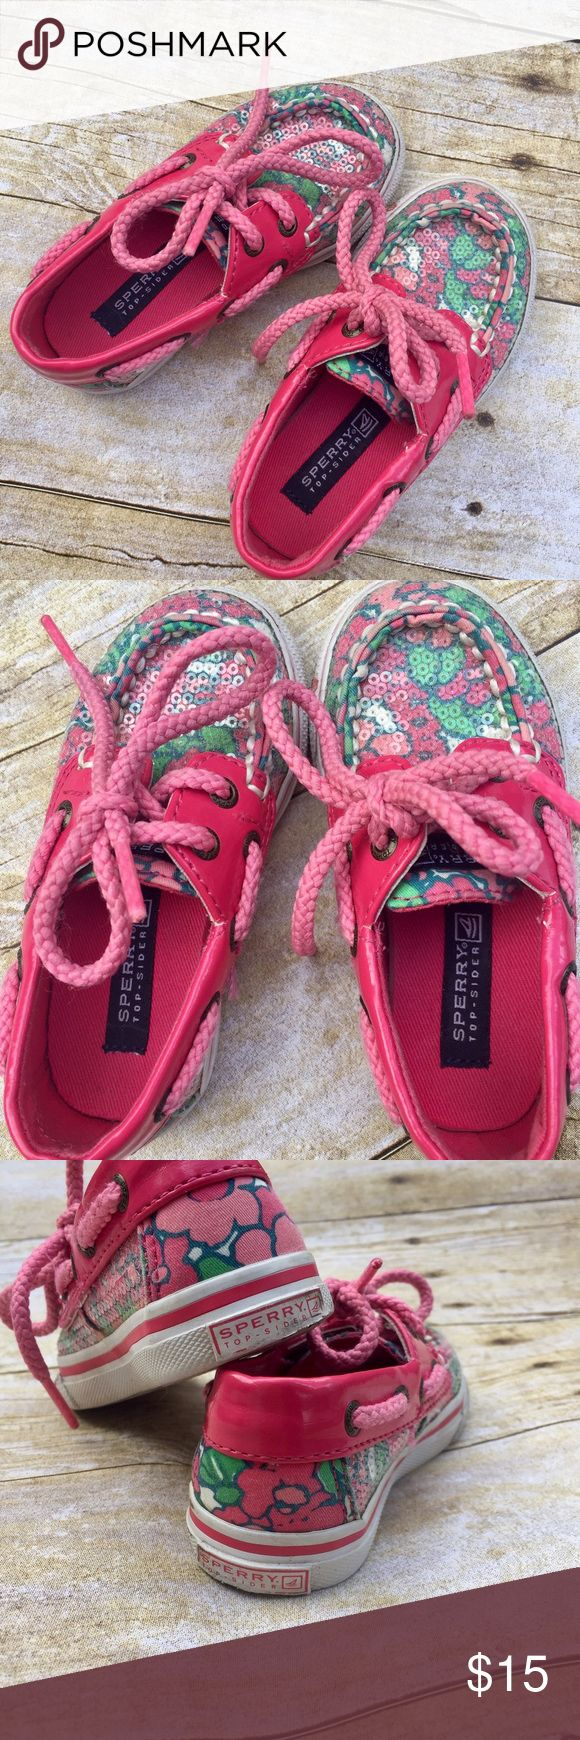 Toddler Girl Sperry Top Siders Adorable toddler Top siders by Sperry. Pink and green flowers with shiny sequins. These shoes were very gently worn. Sperry Top-Sider Shoes